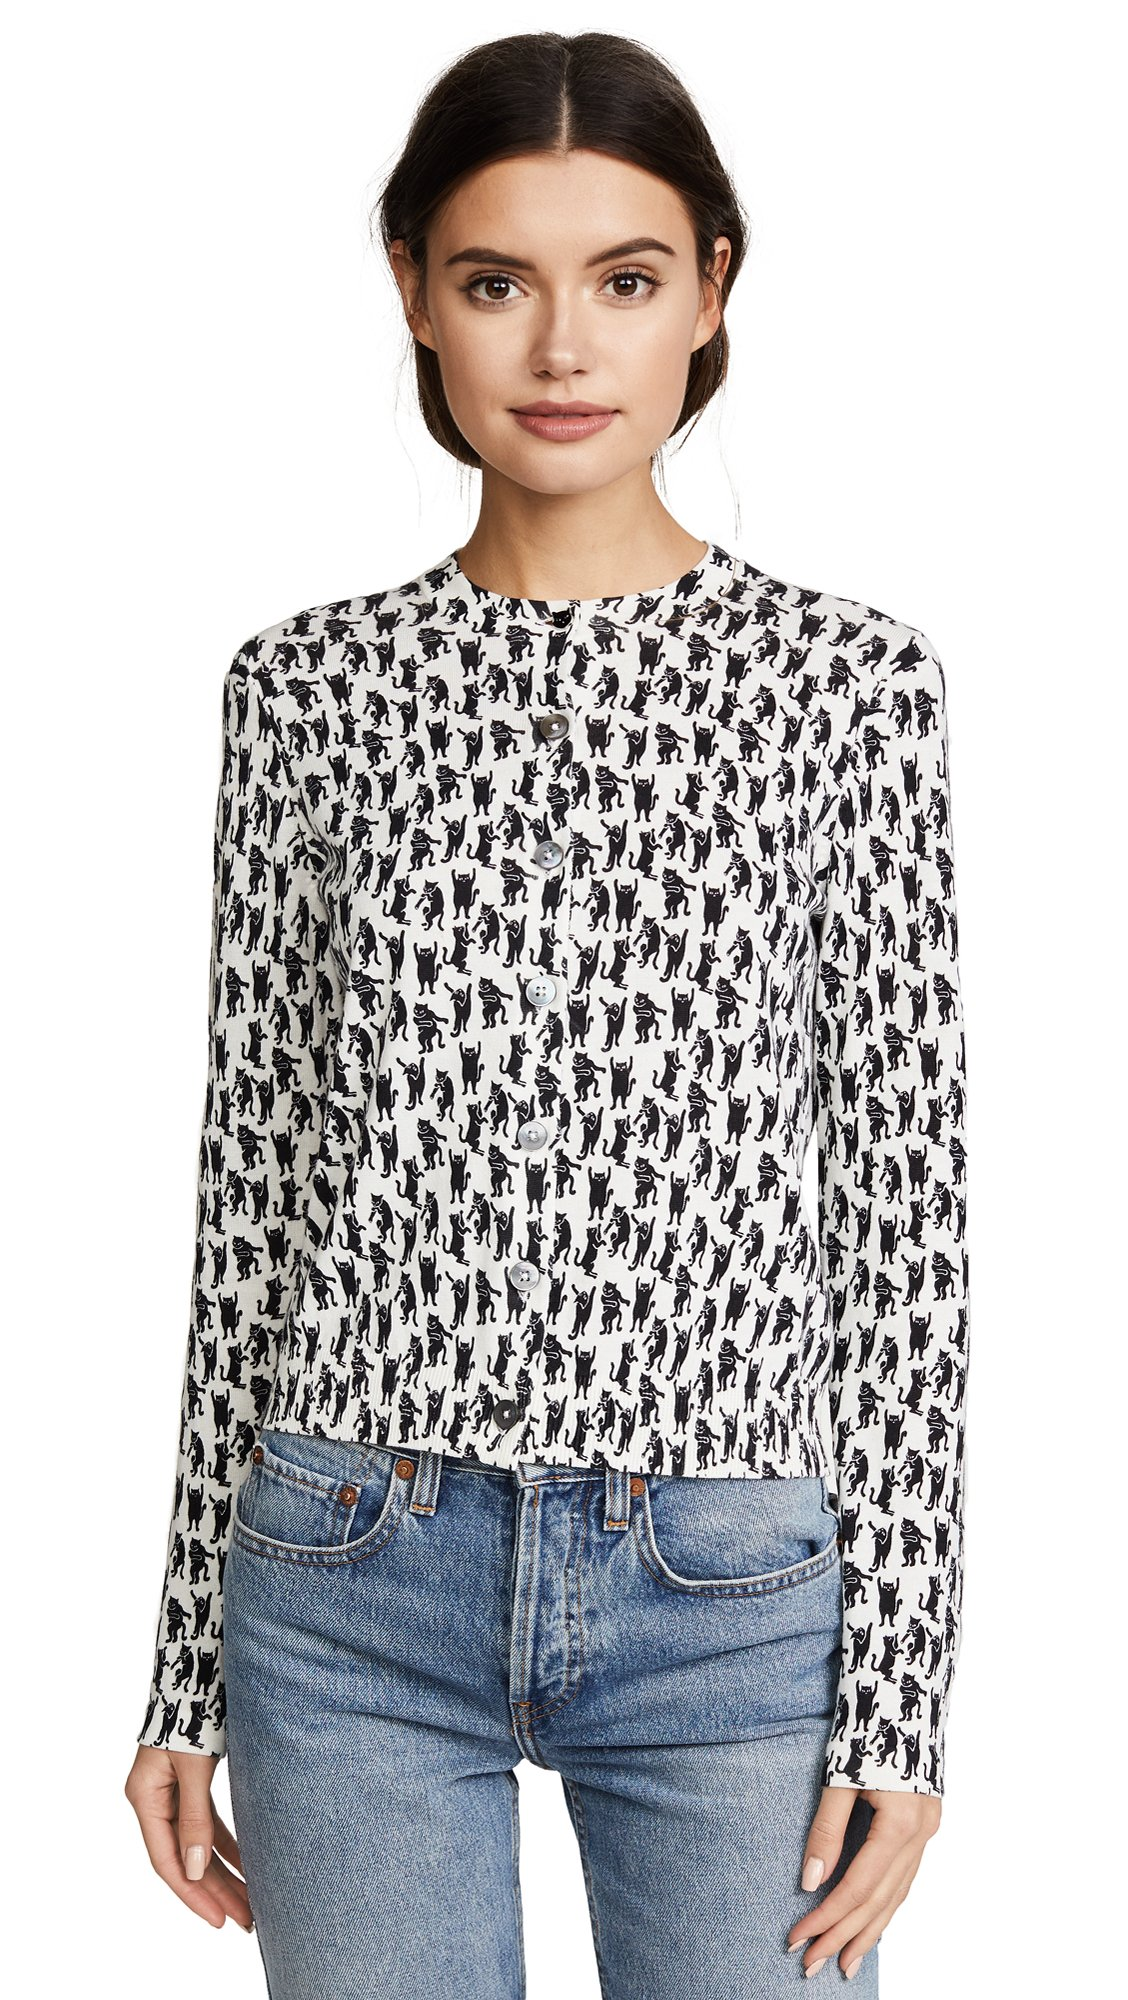 Paul Smith Women's Kitty Cardigan, White, Small